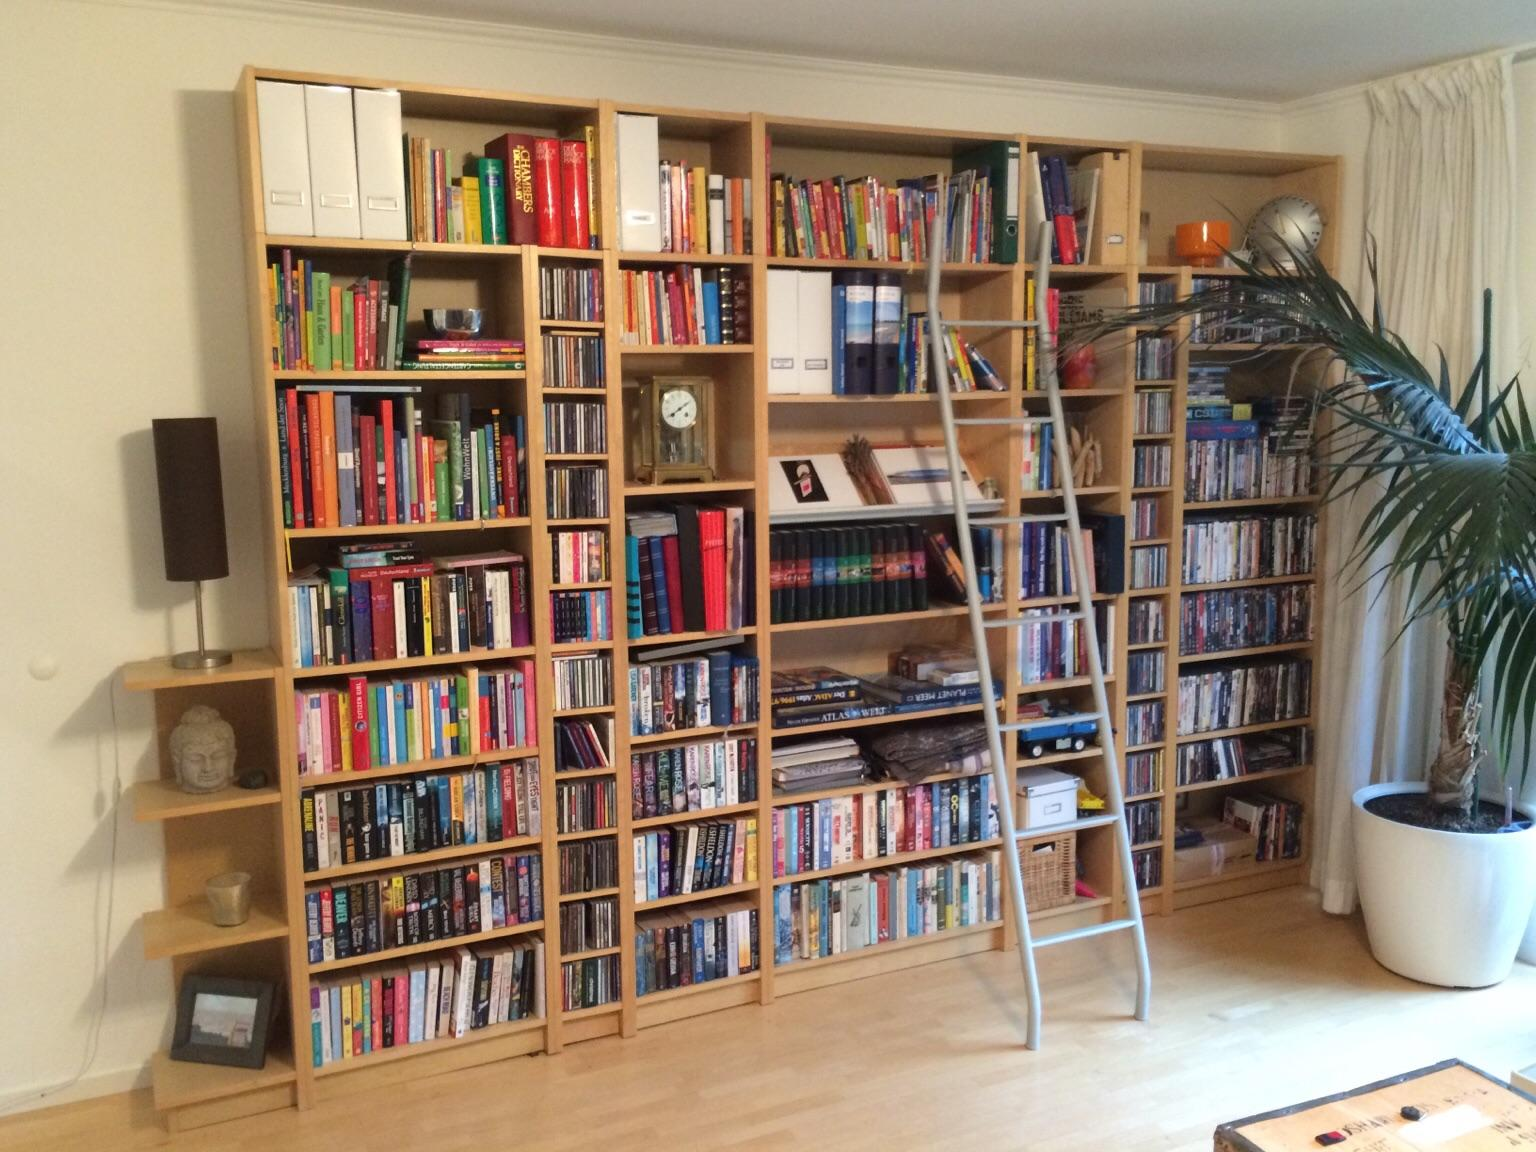 Ikea Billy Bücherregal Birke 3 53m X 2 37m In 22846 Norderstedt For 260 00 For Sale Shpock